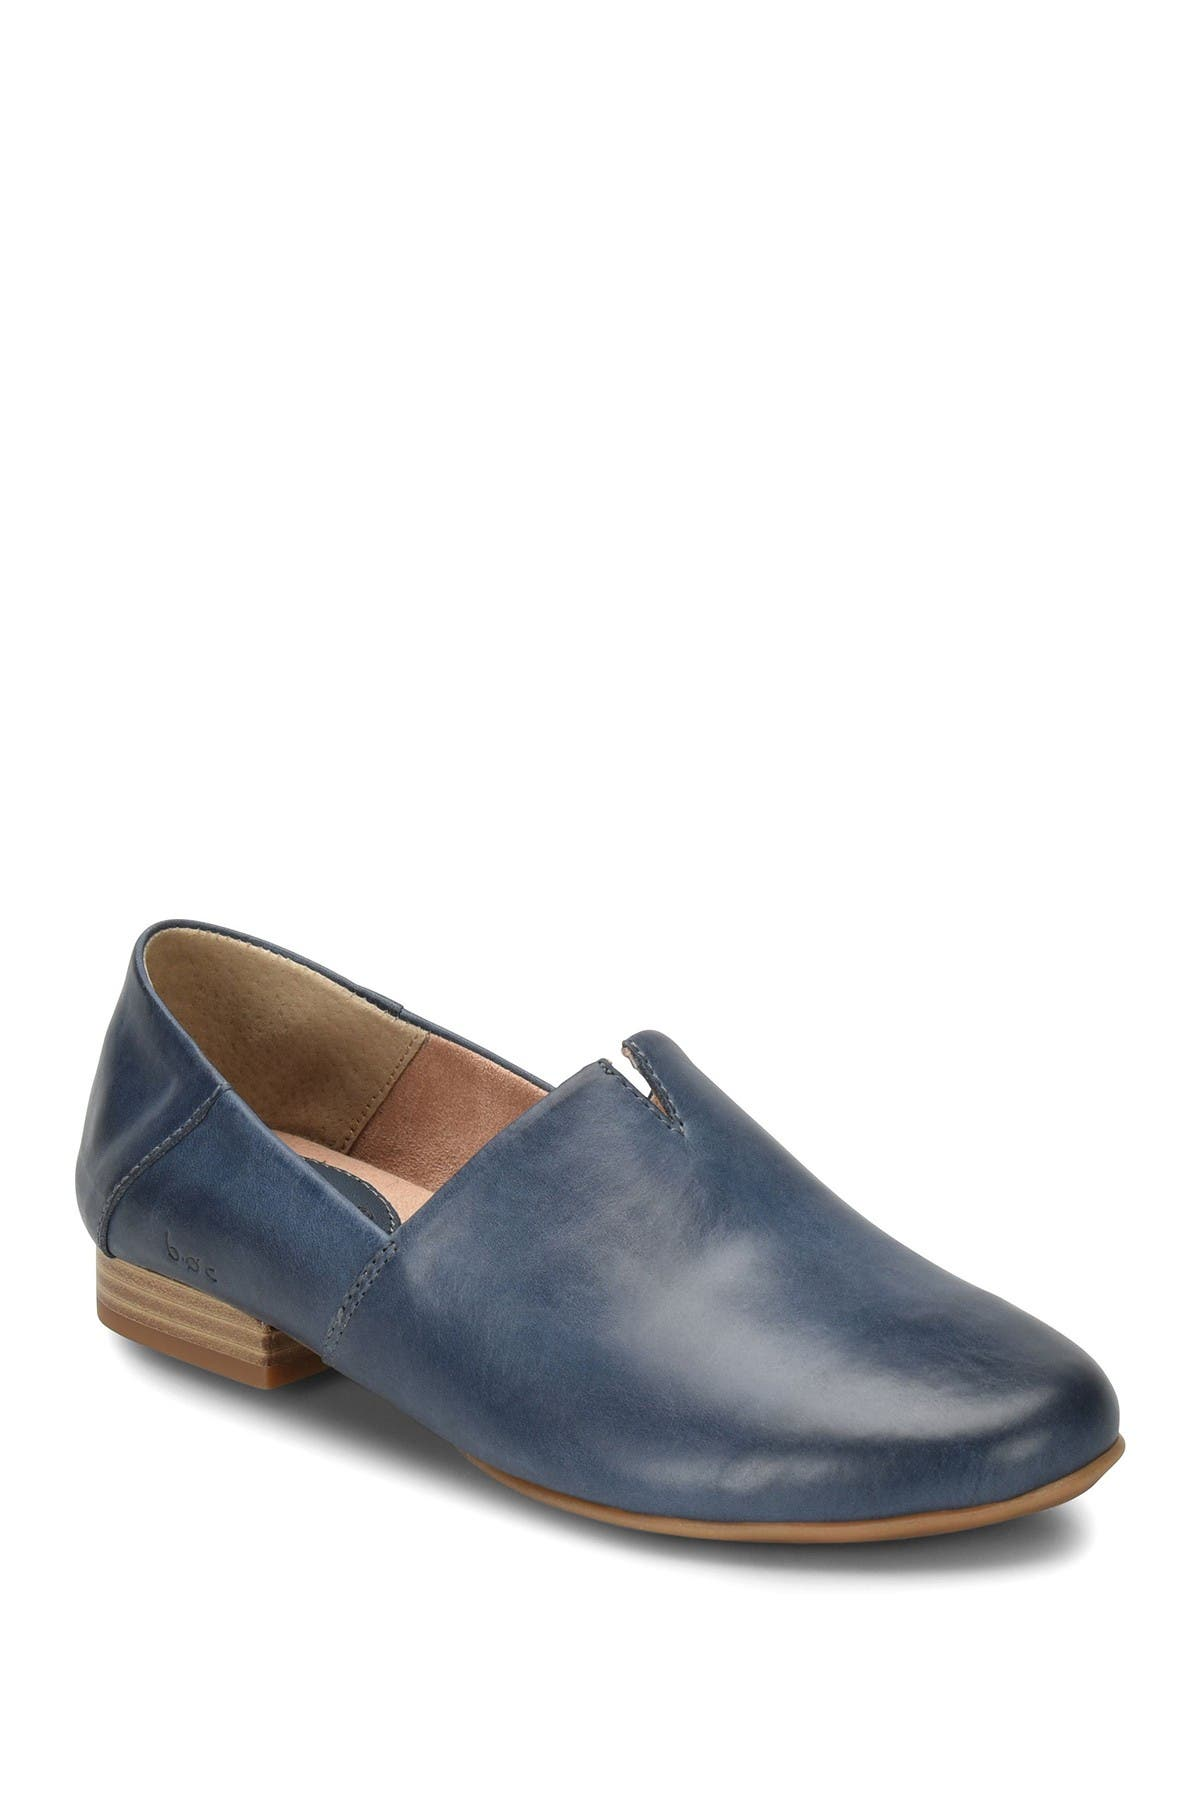 B.O.C. BY BORN   Suree Leather Loafer